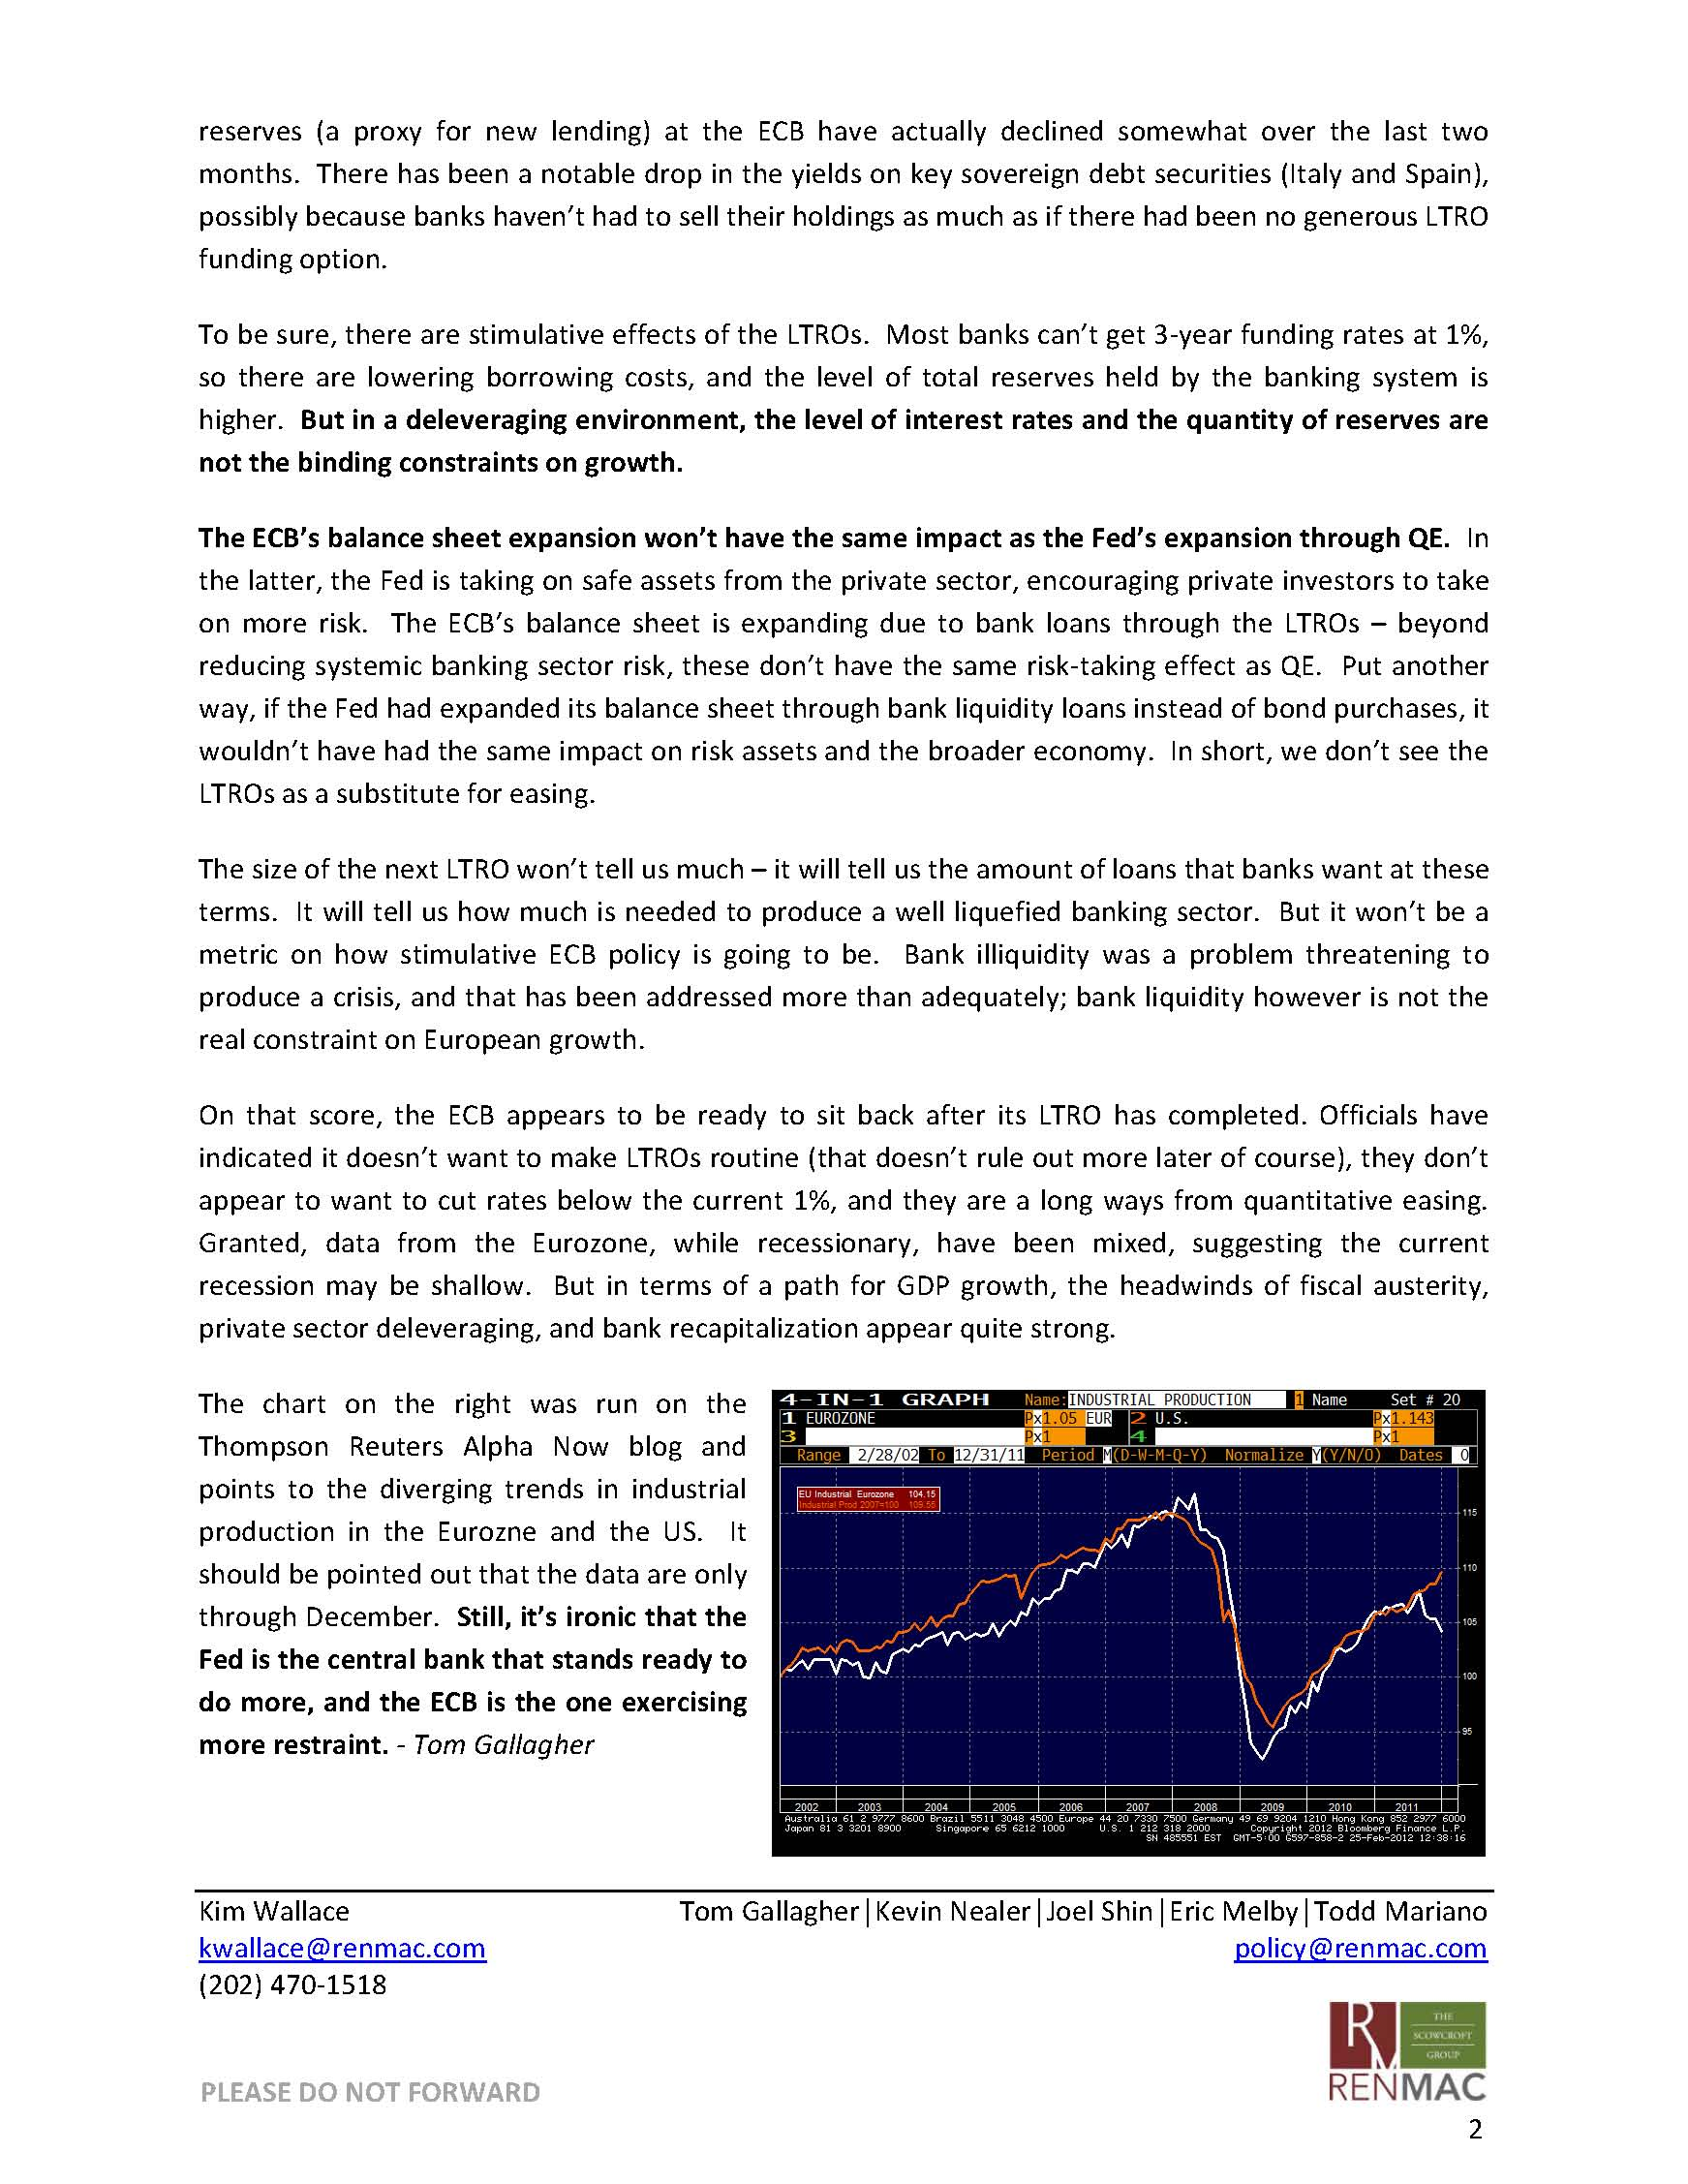 2012-02-27 WDPD-reorder_Page_2